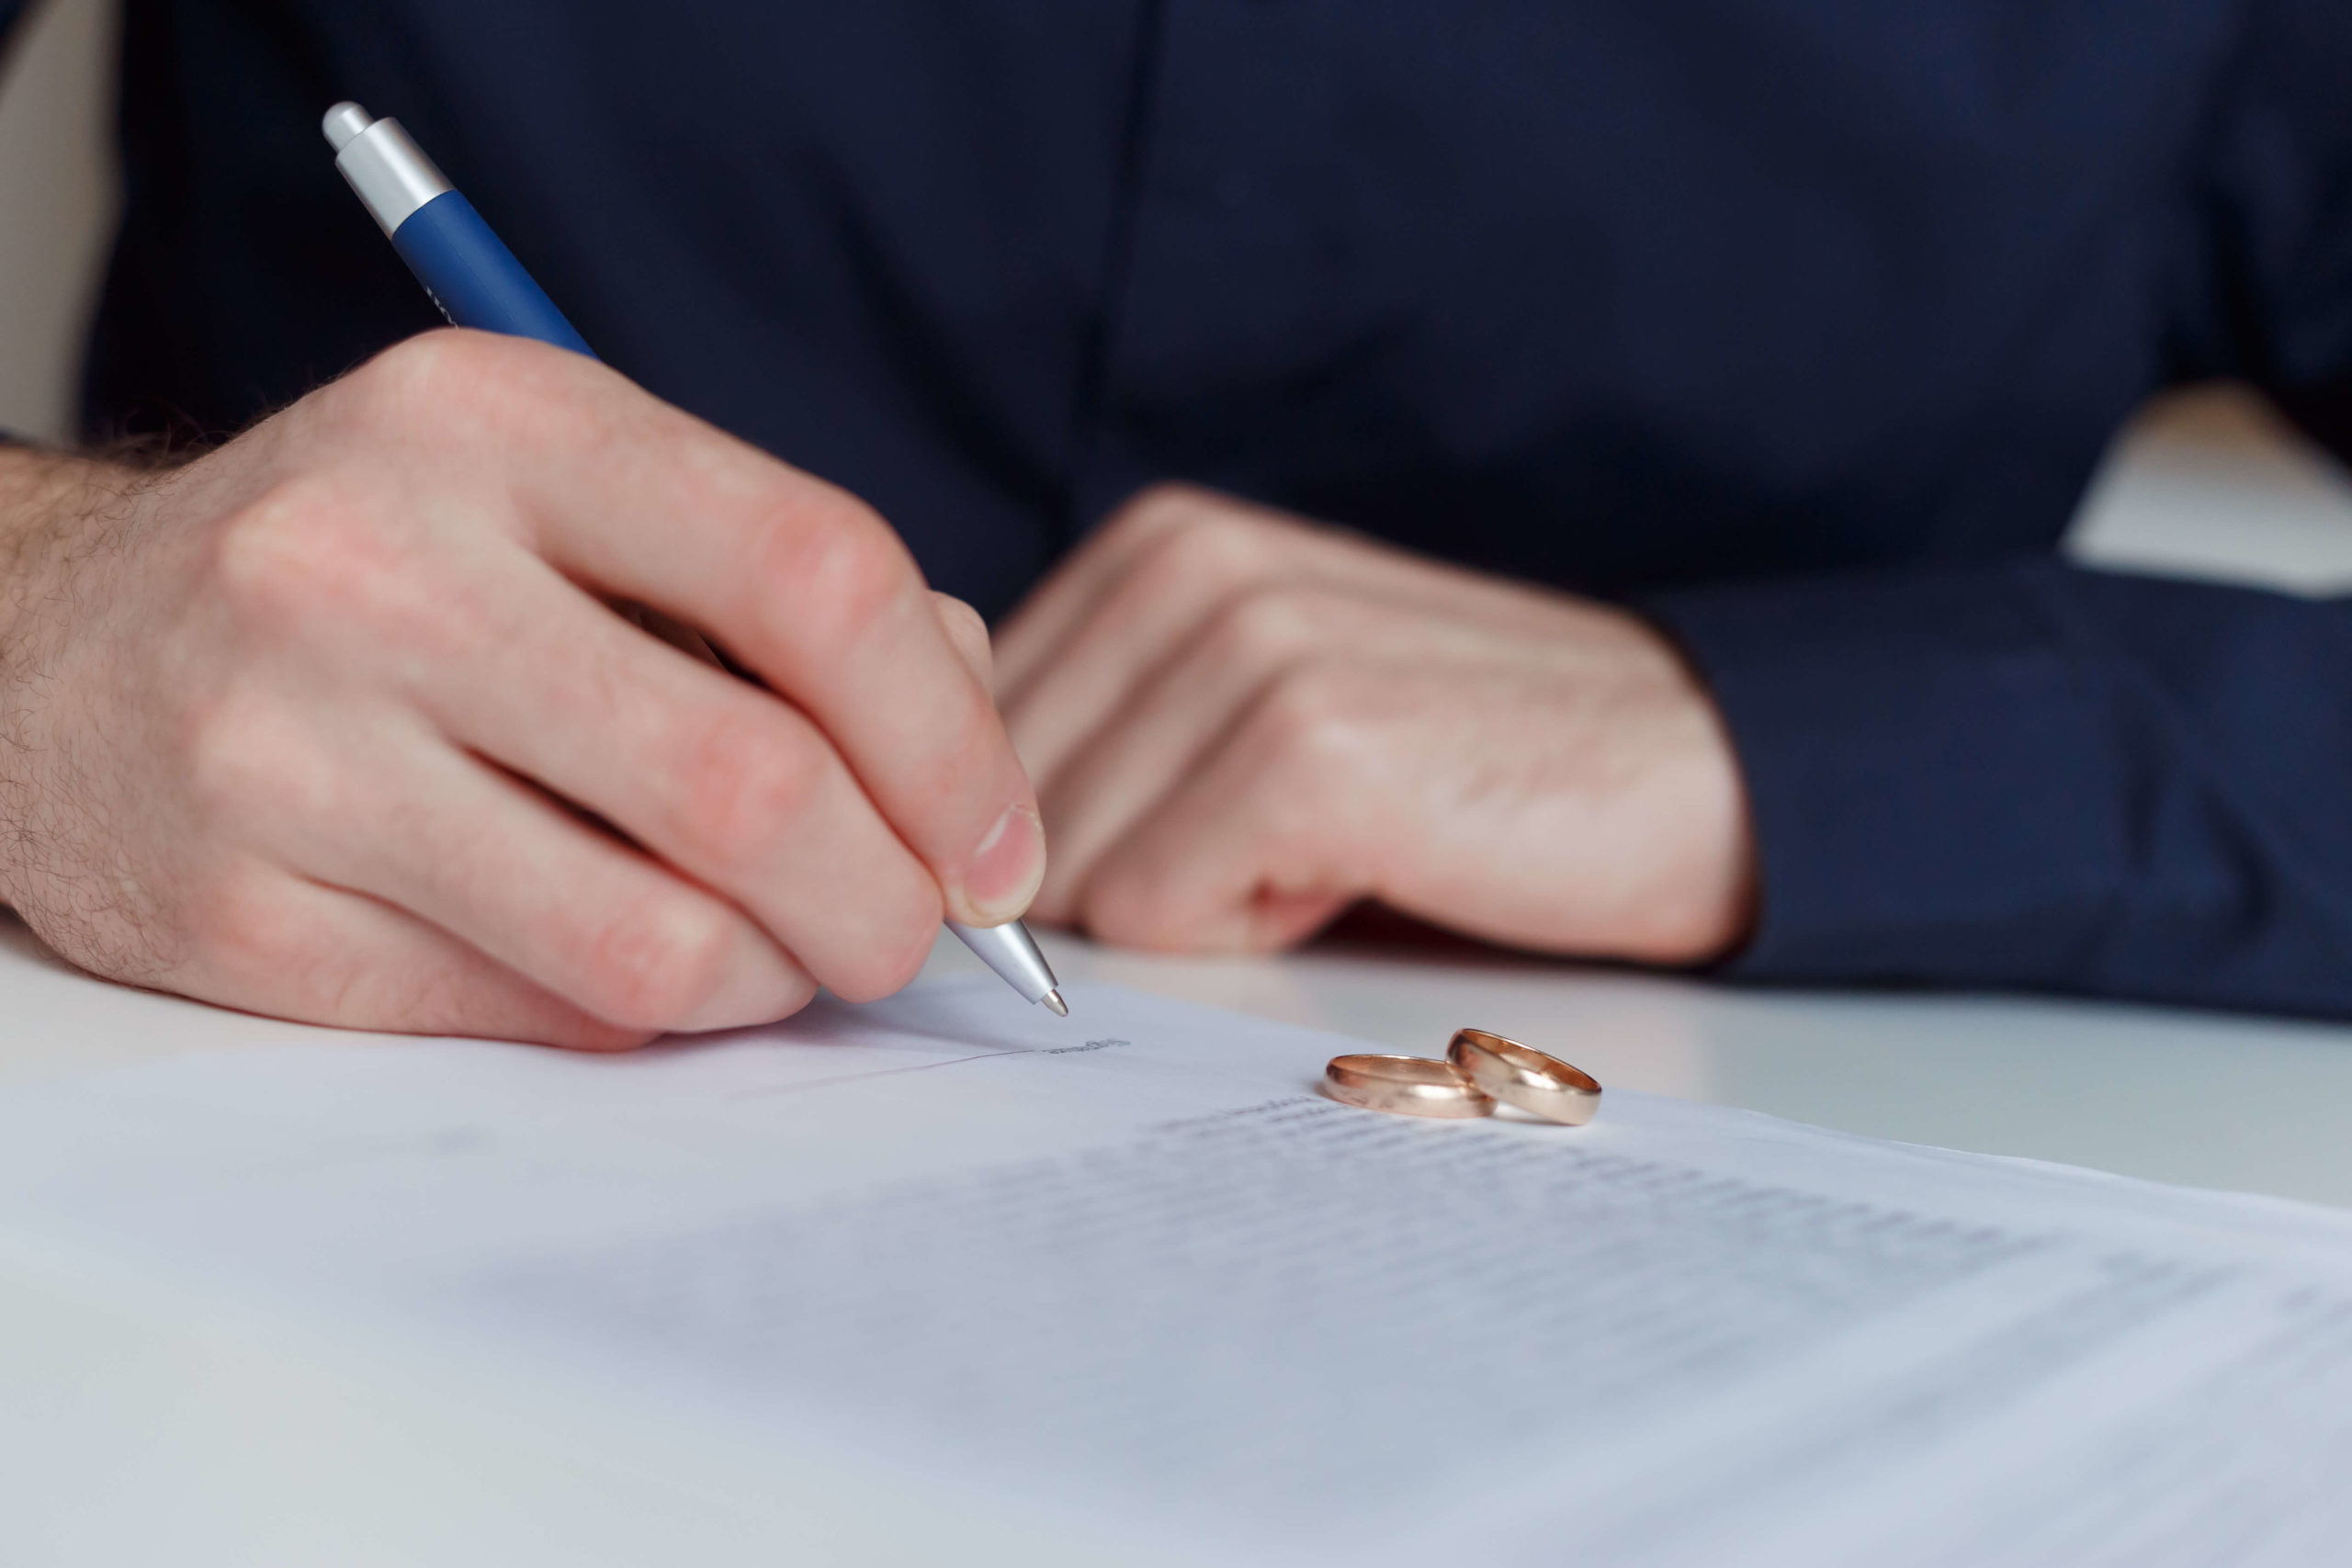 man alone filling in divorce papers with wedding rings on table